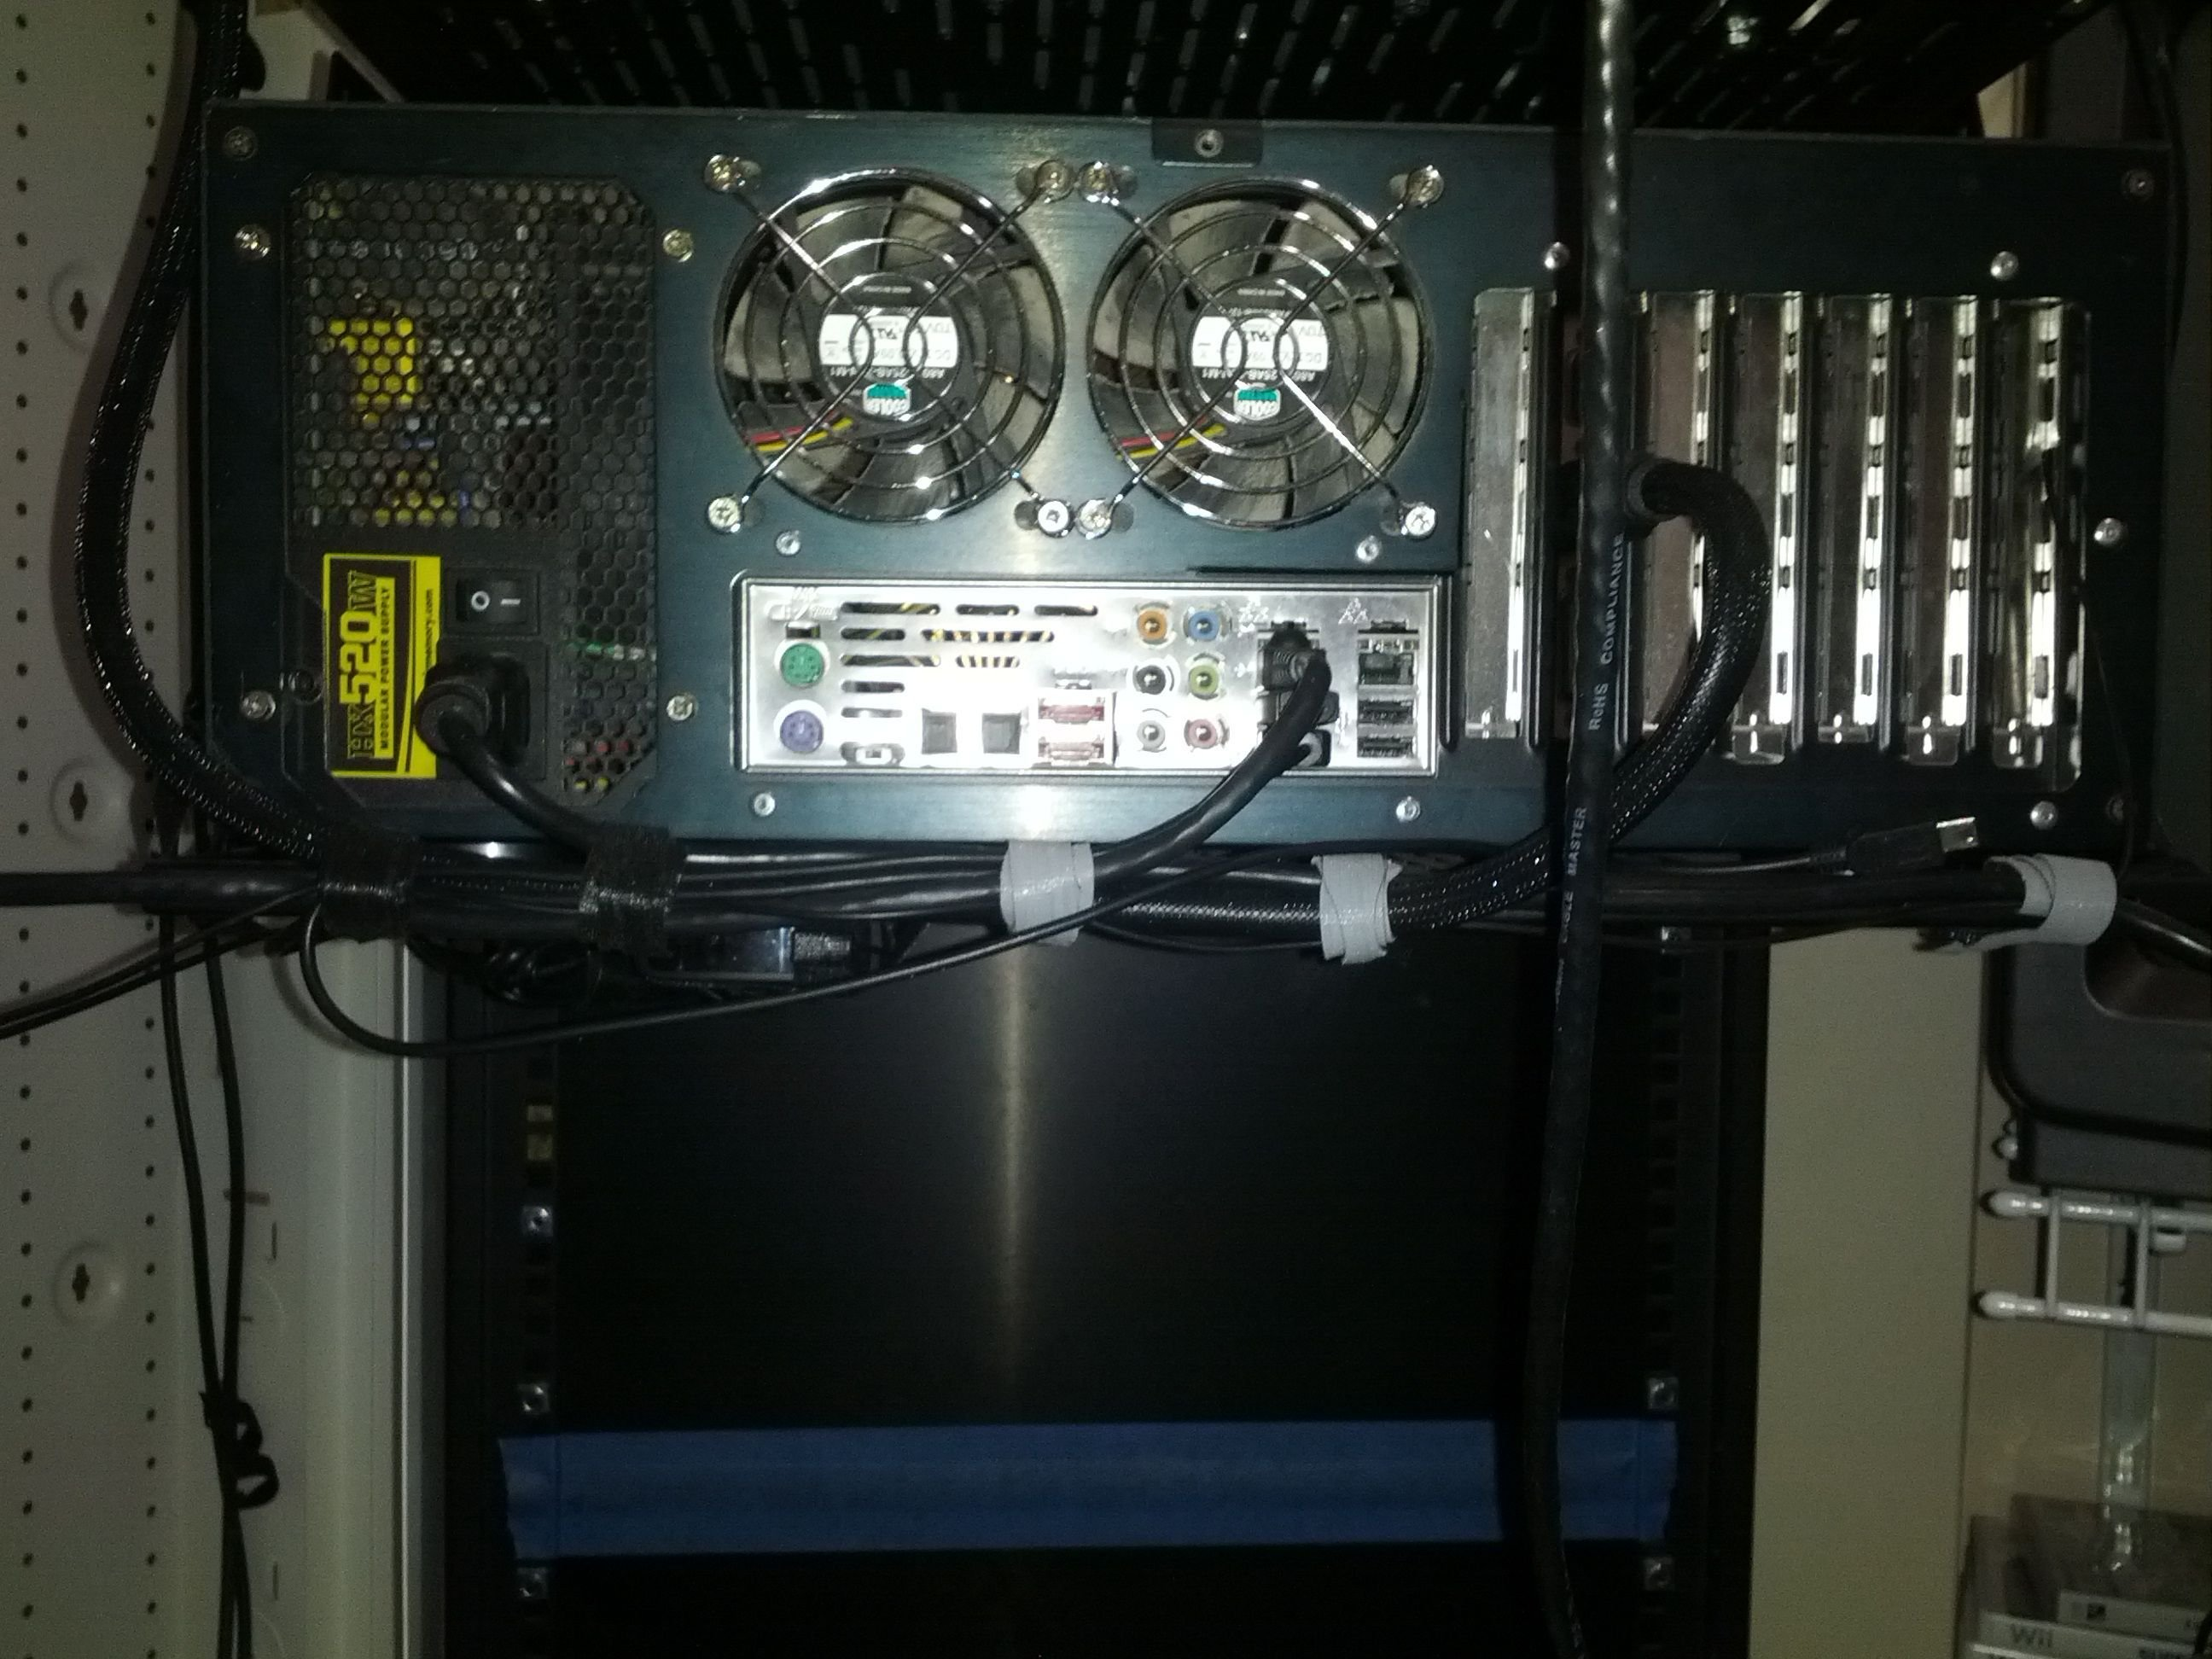 My Home Theater Rack And Equipment Room Avs Forum Bypass Wiring Cabinet With Speaker Wire Here Is The Back Of Apc S20blk Ht Battery Backup There A Lot Stuff Goign To This Some It Just Small Like Ir Repeater